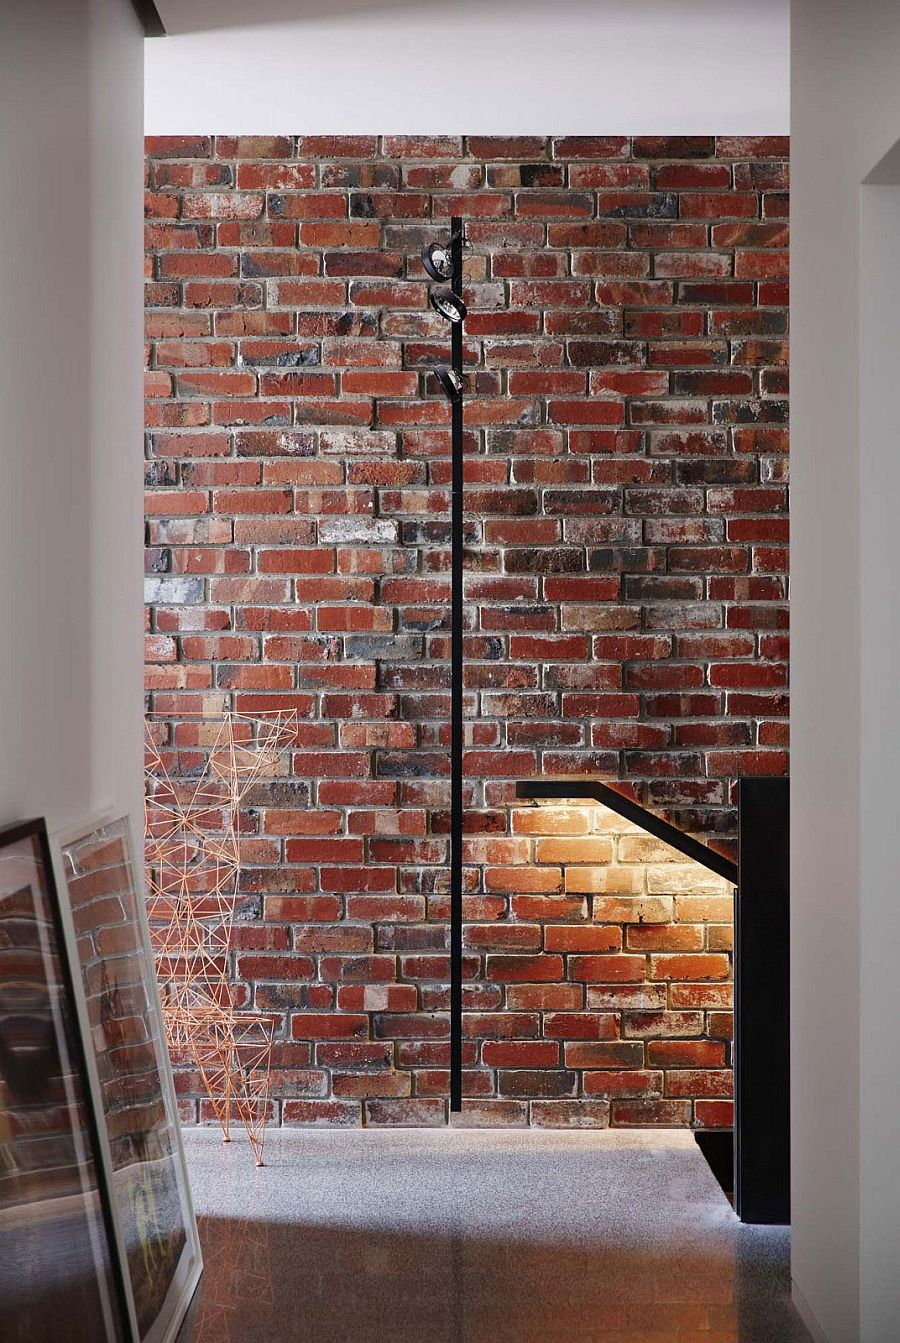 Original brick wall of the house exposed to give it a loft-like appeal